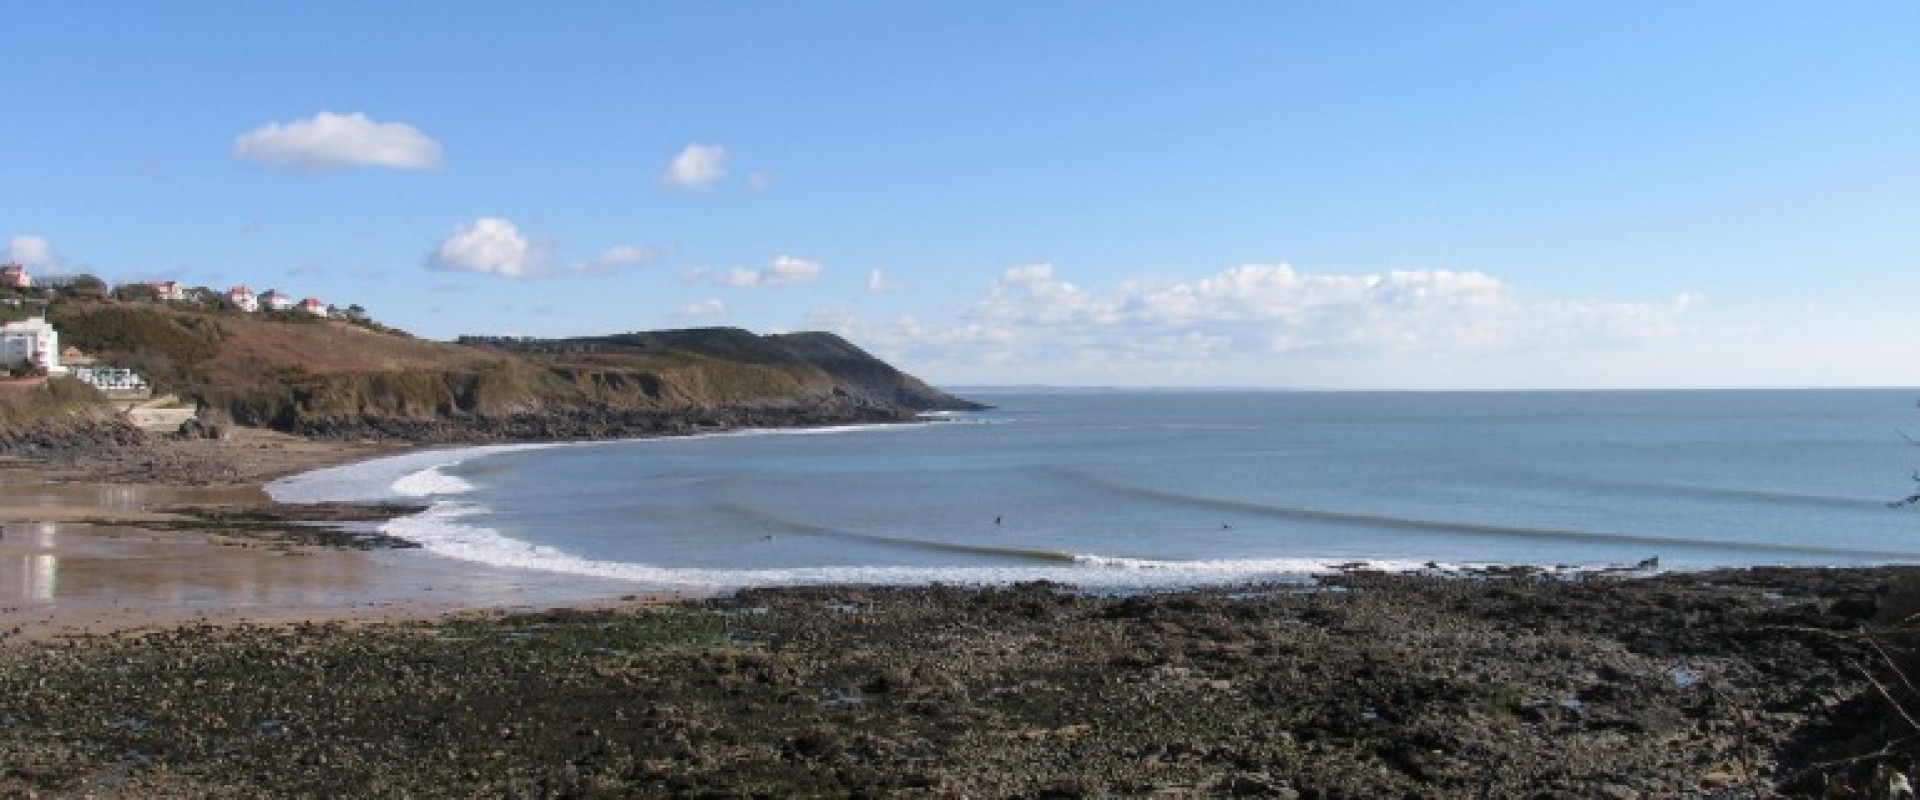 Guts Surfboards's photo of Langland Bay